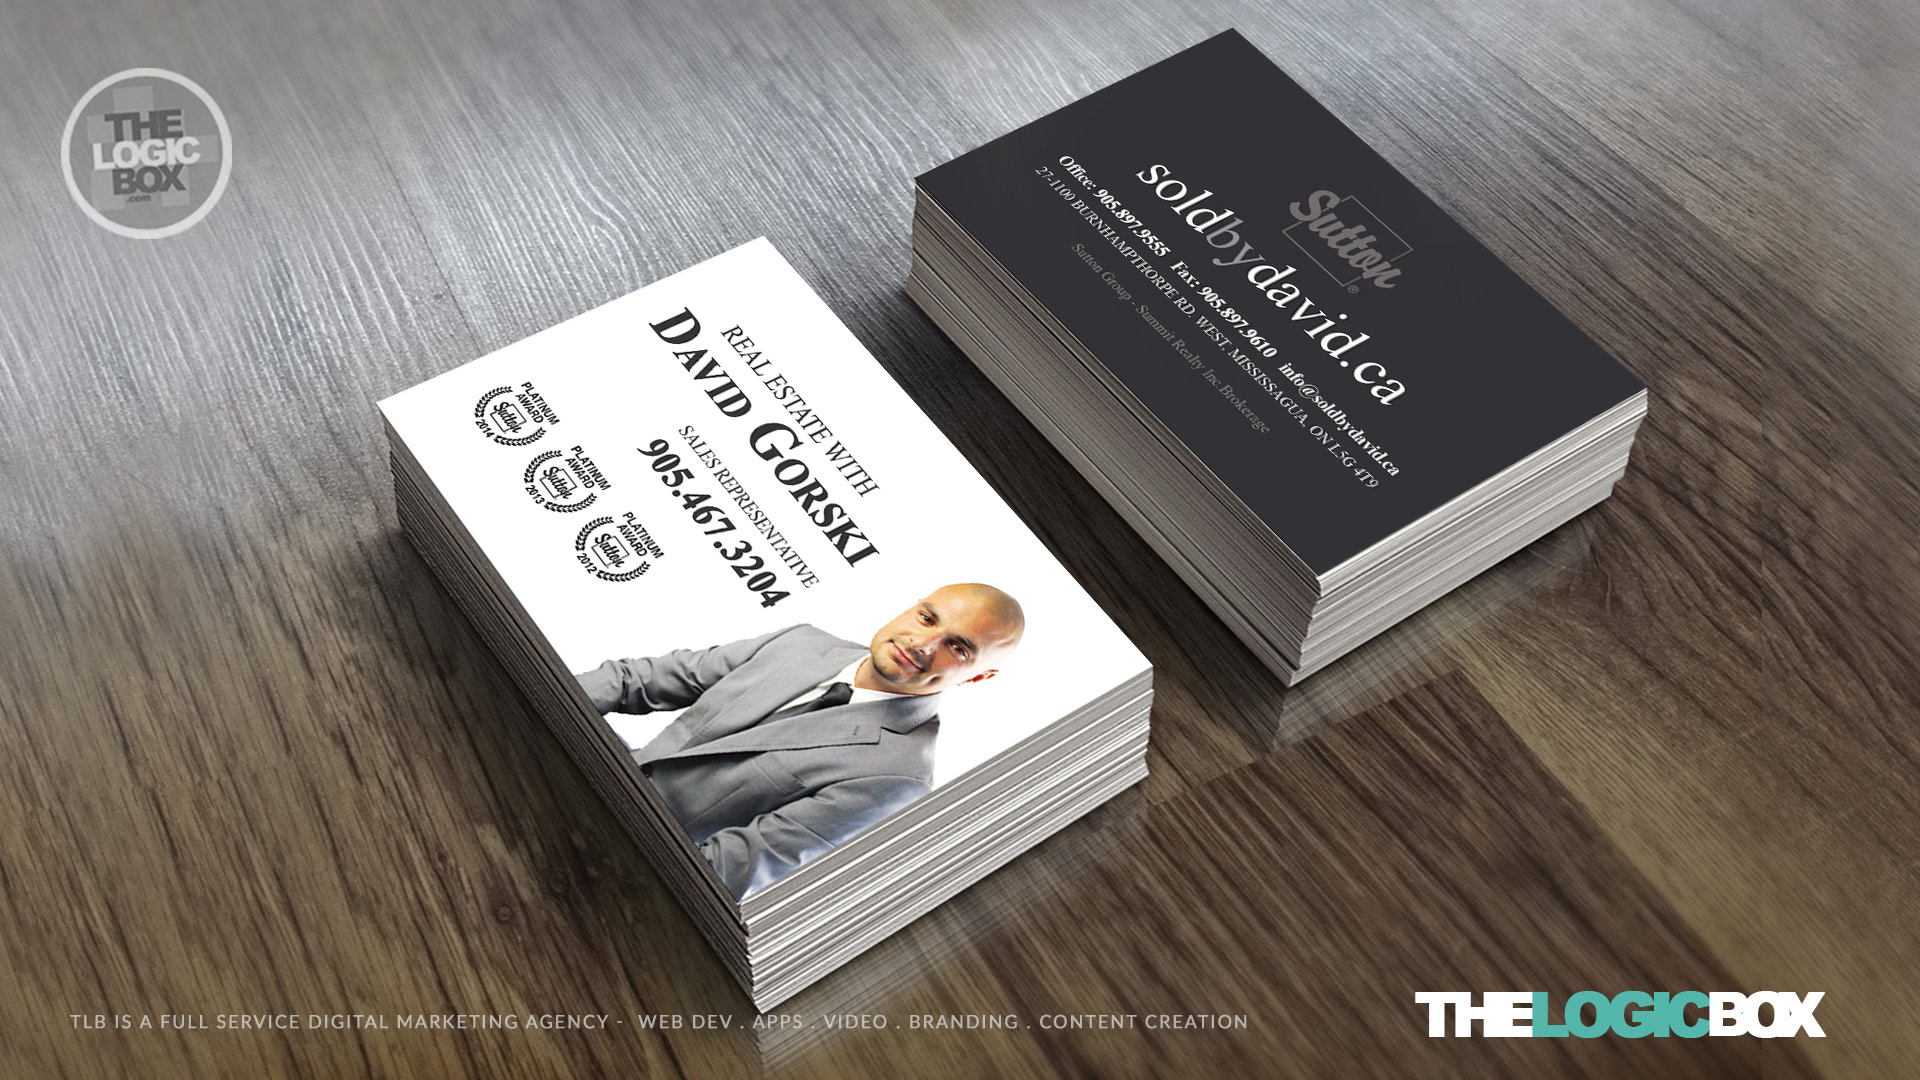 Business-Card-the-logic-box-agency-5-SoldbyDavid